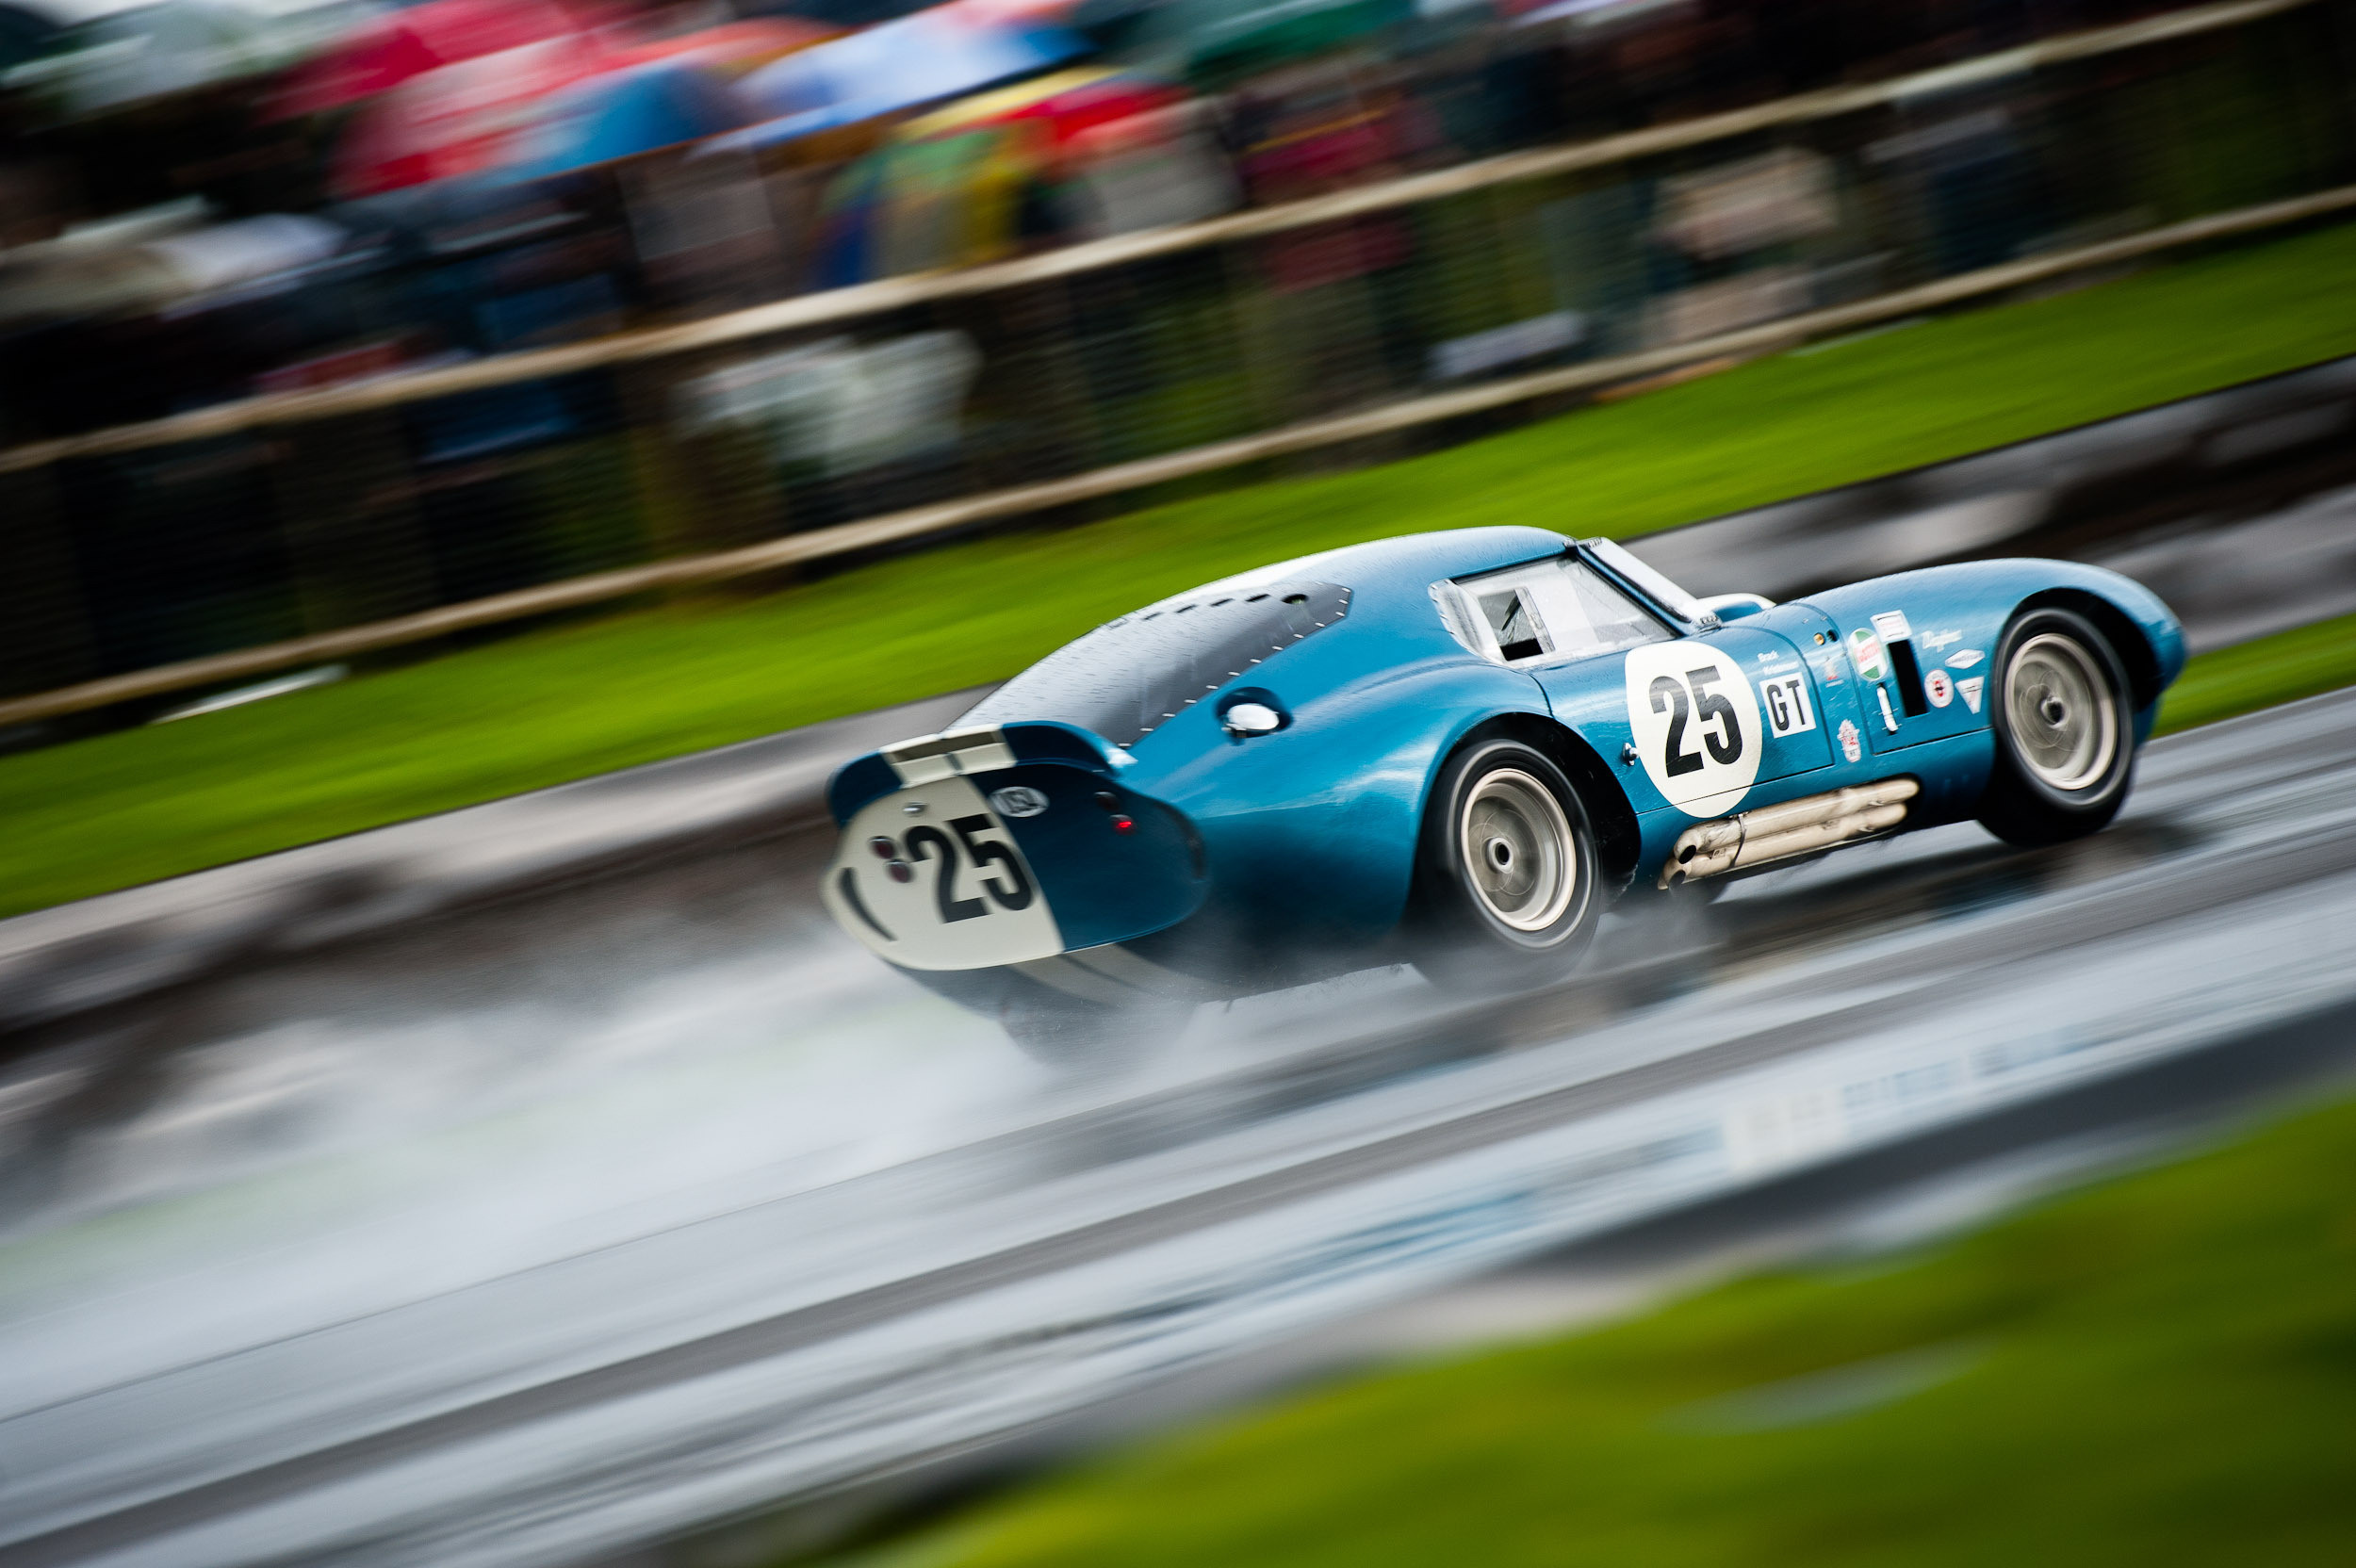 1 Shelby Cobra Daytona Coupe HD Wallpapers | Backgrounds – Wallpaper Abyss